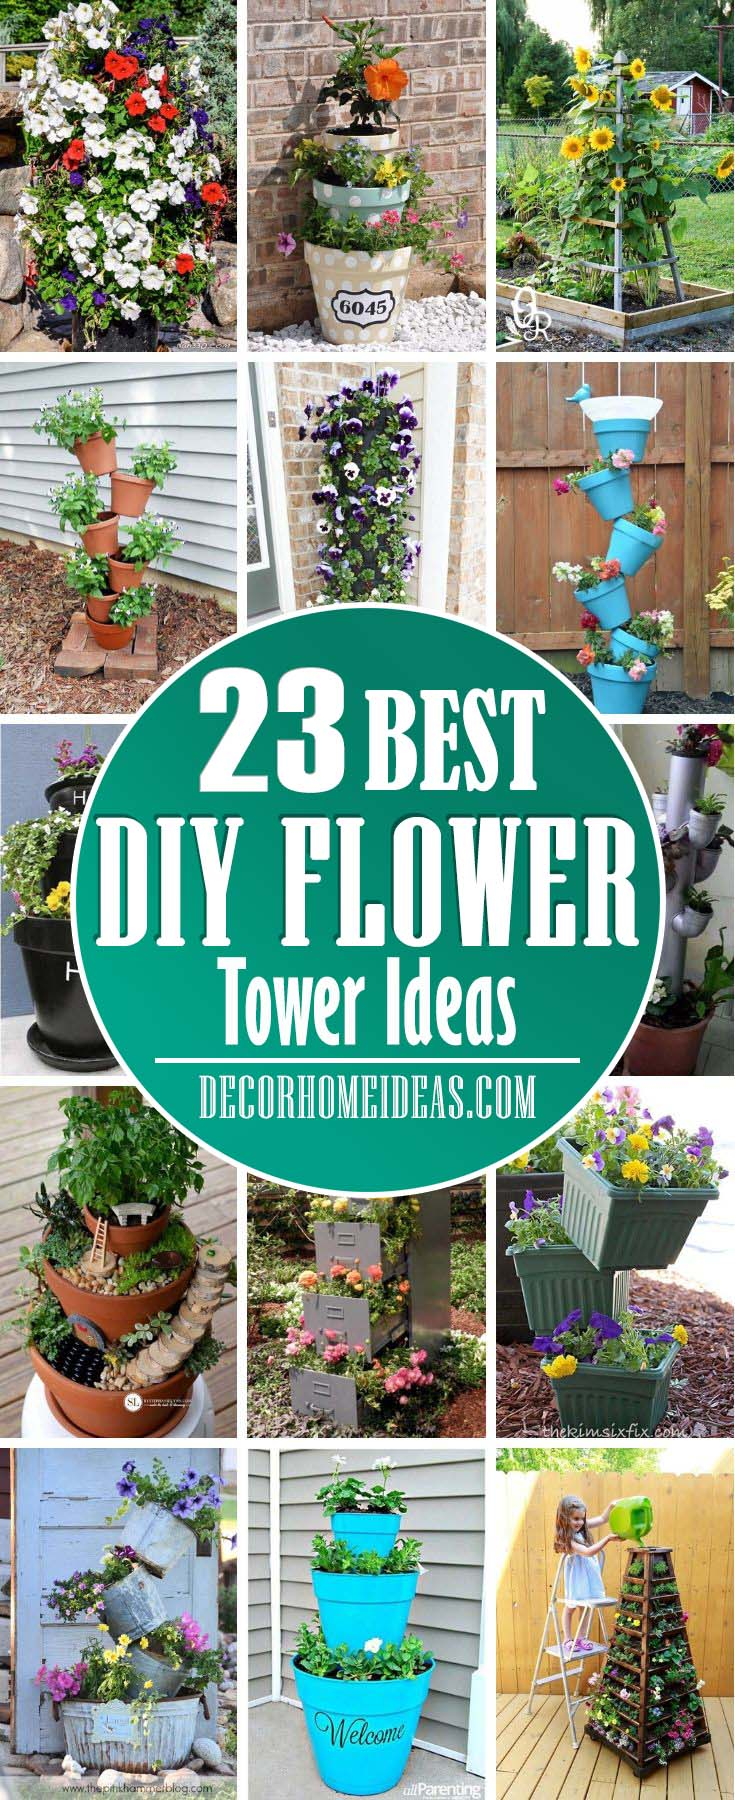 Best DIY Flower Tower Ideas. Spruce up your garden with these flower towers that are easy to do. #diy #garden #flowertower #decorhomeideas